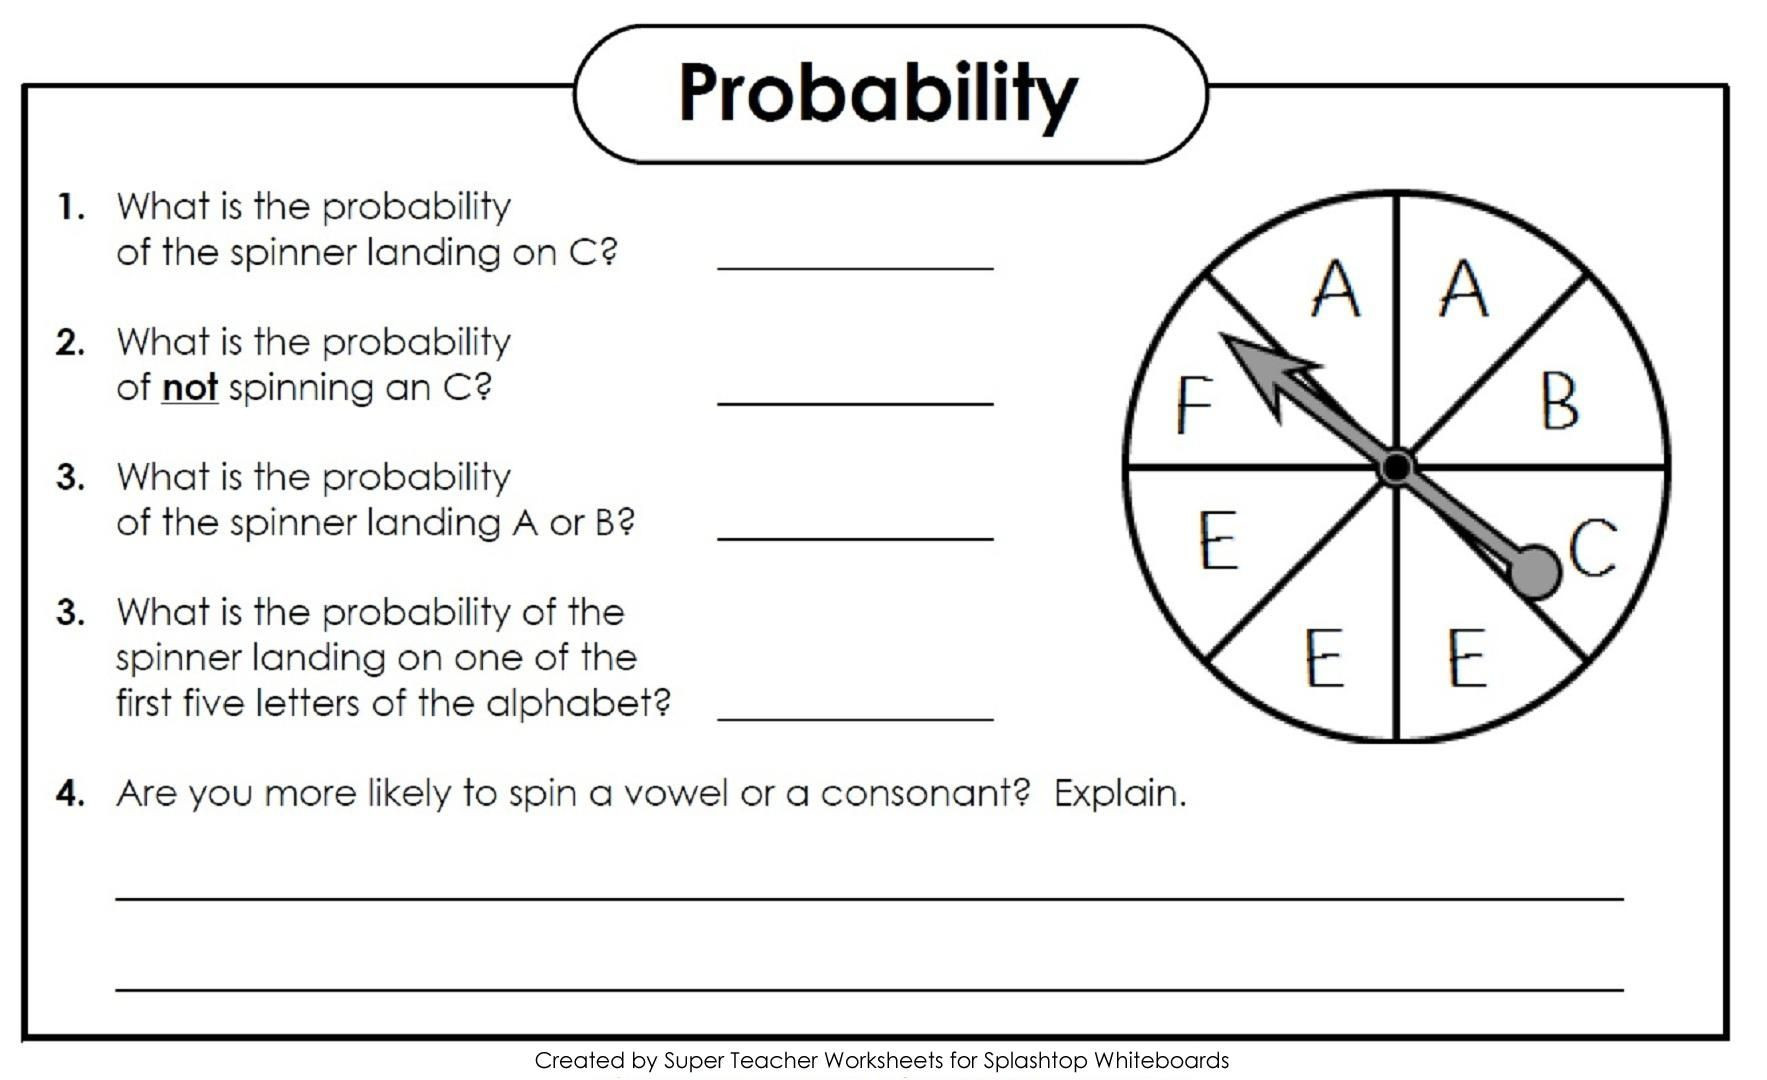 Probability Worksheets 7th Grade Pdf 15 High School Geometrie Arbeitsblätter Pdf